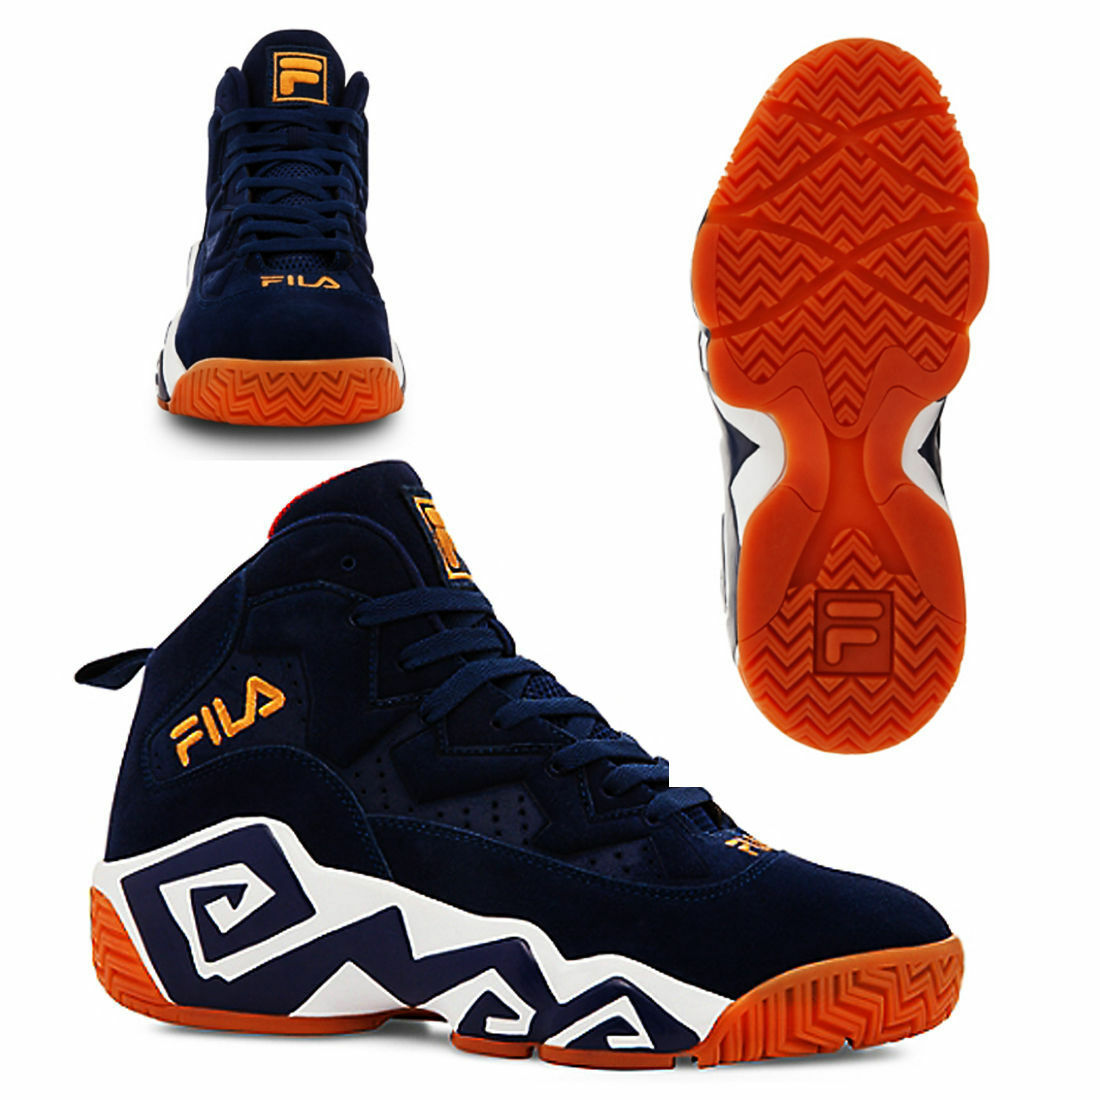 NEW MENS FILA LIMITED EDITION RETRO JAMAL MASHBURN MB BASKETBALL SNEAKER